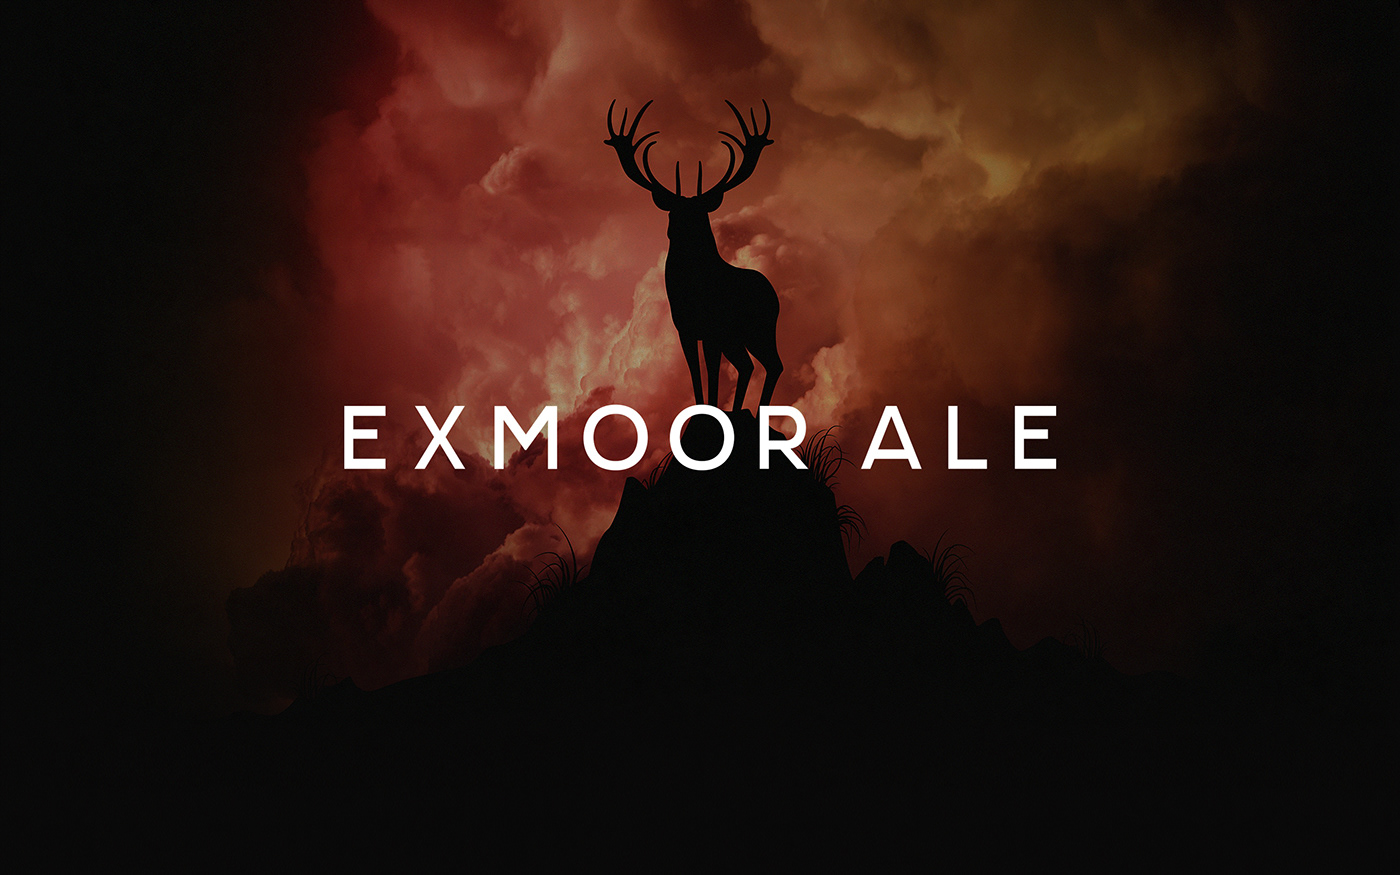 Exmoor Ale - Packaging